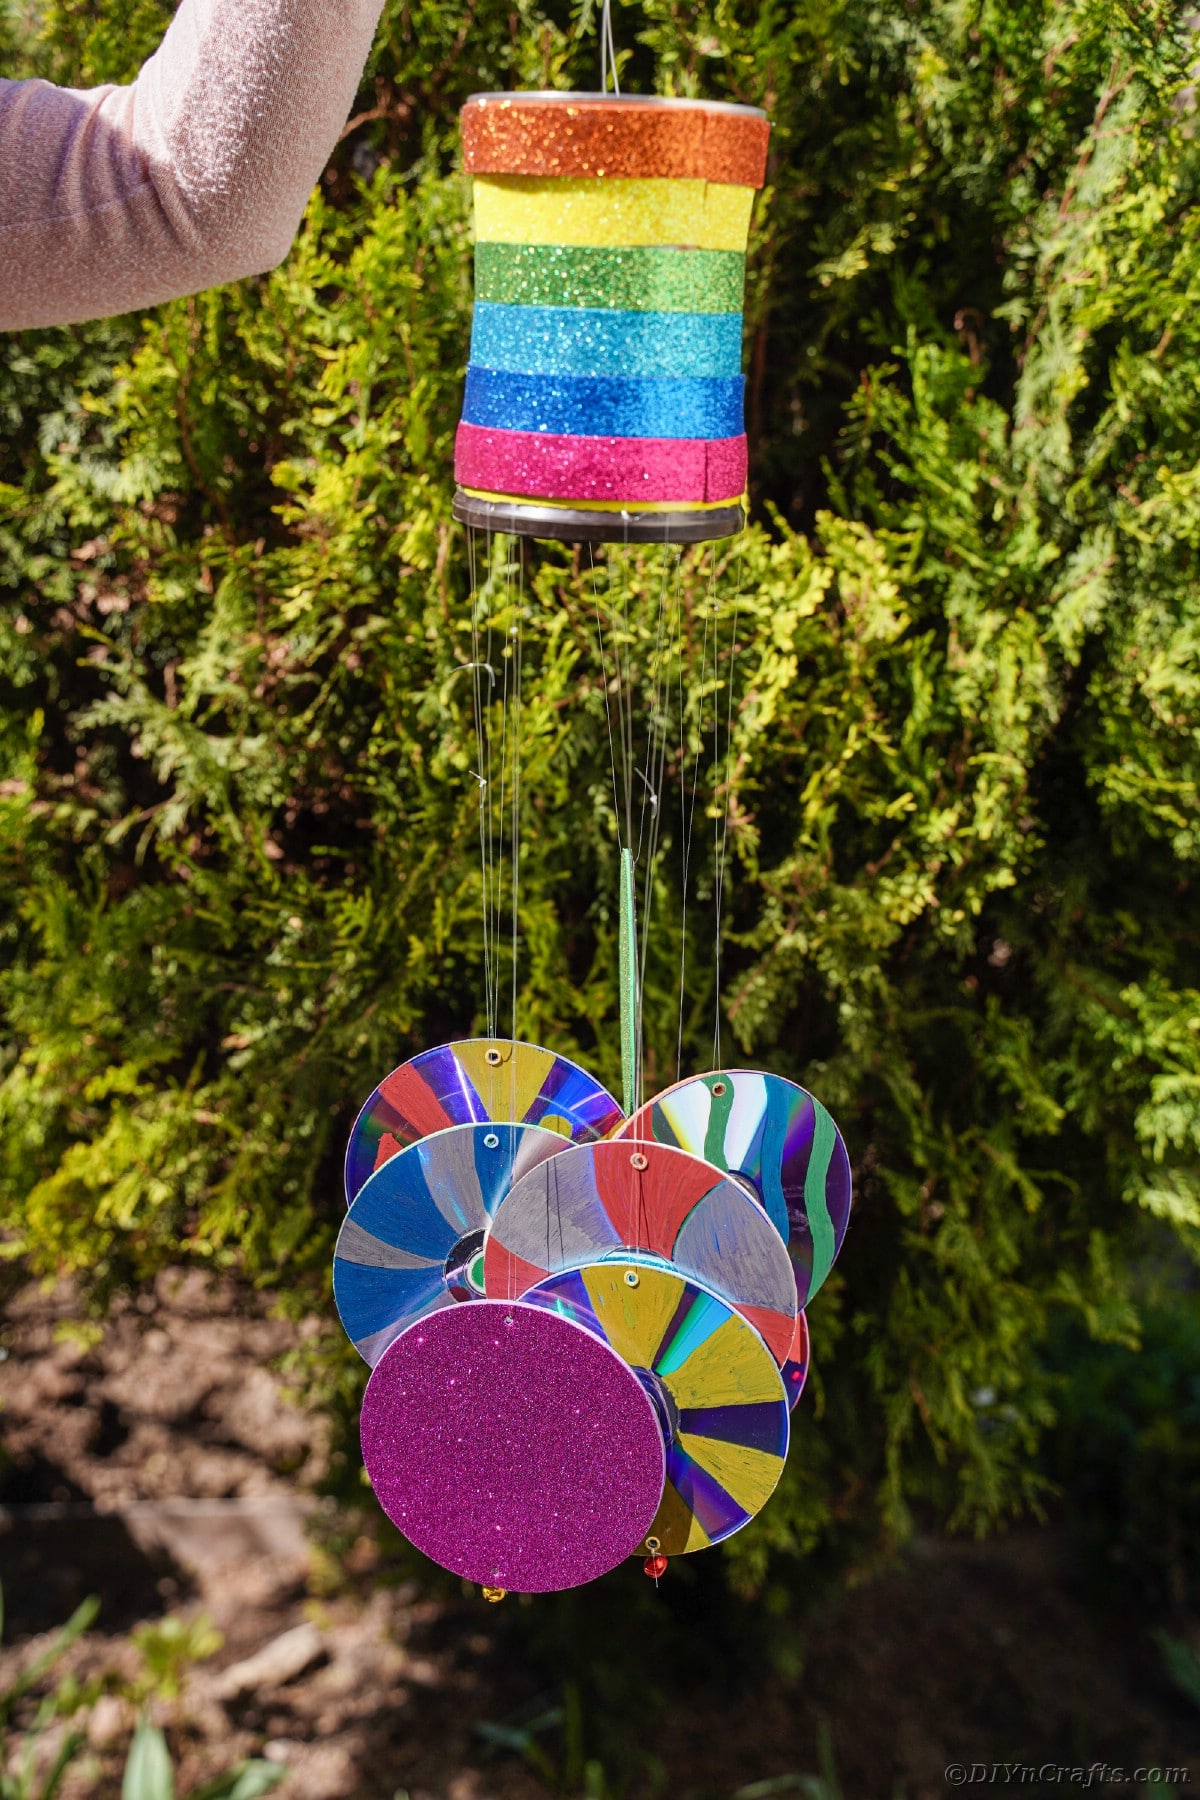 Woman holding colorful wind chime by bush